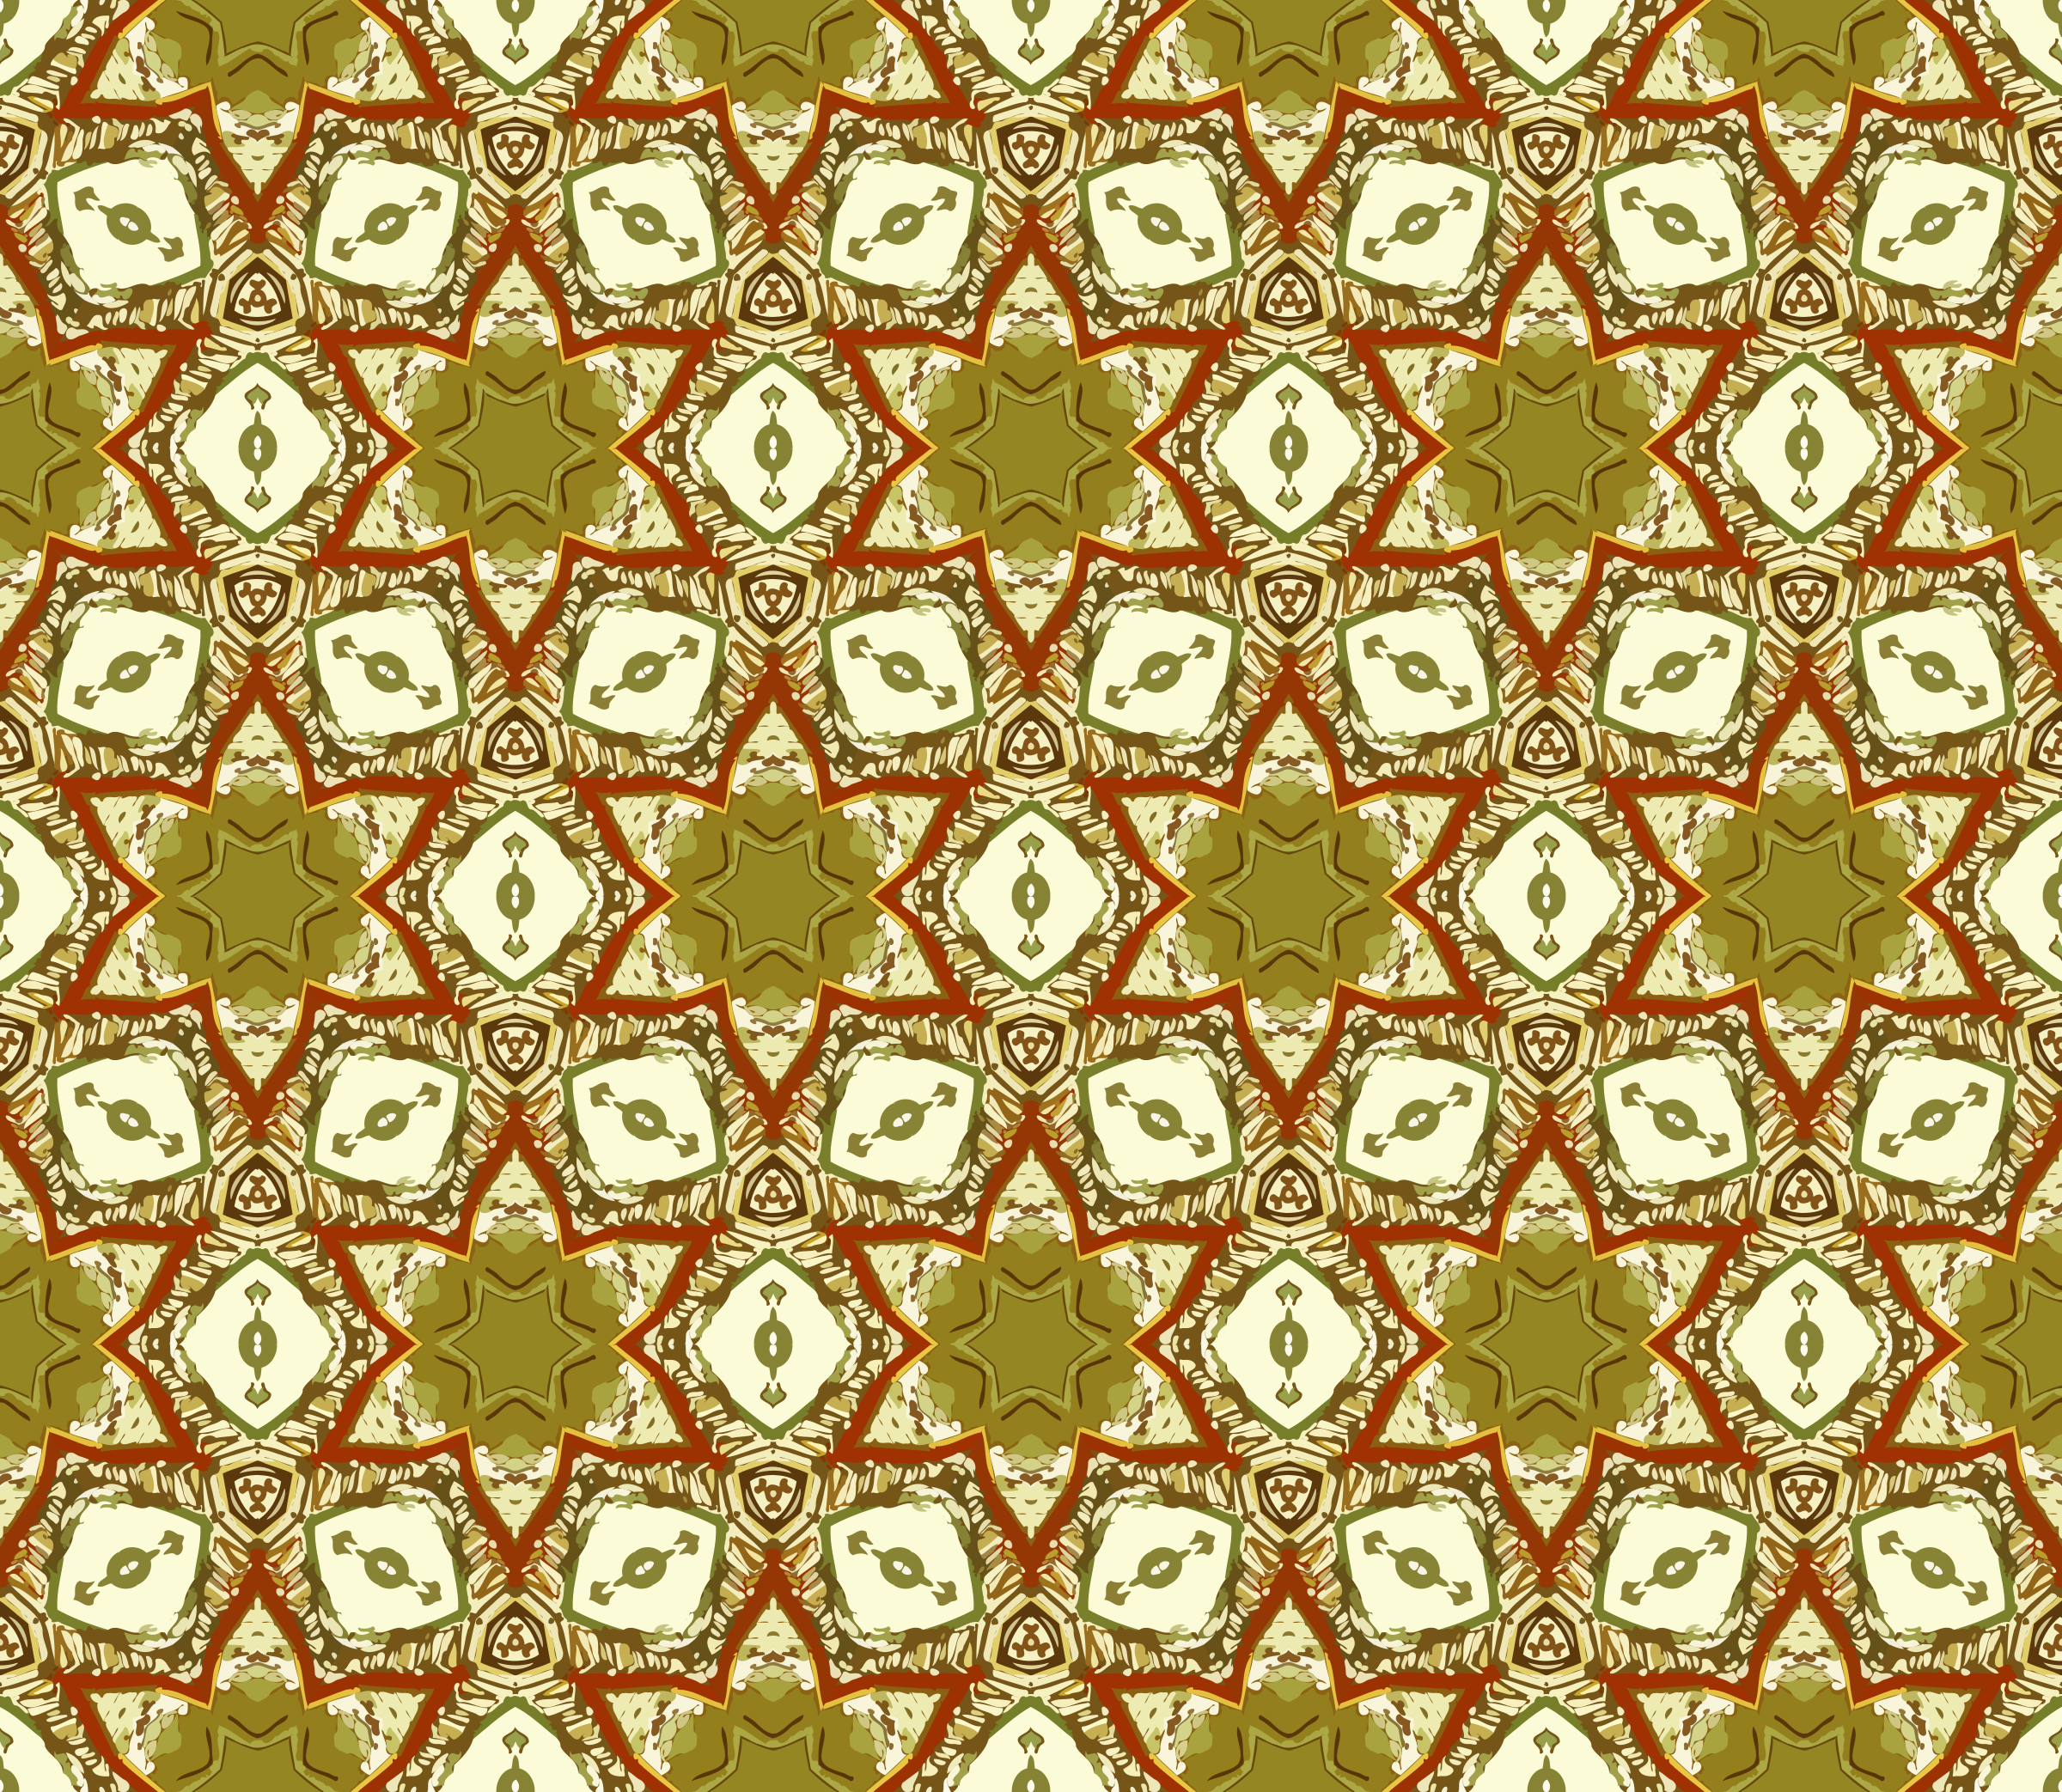 Background pattern 153 by Firkin